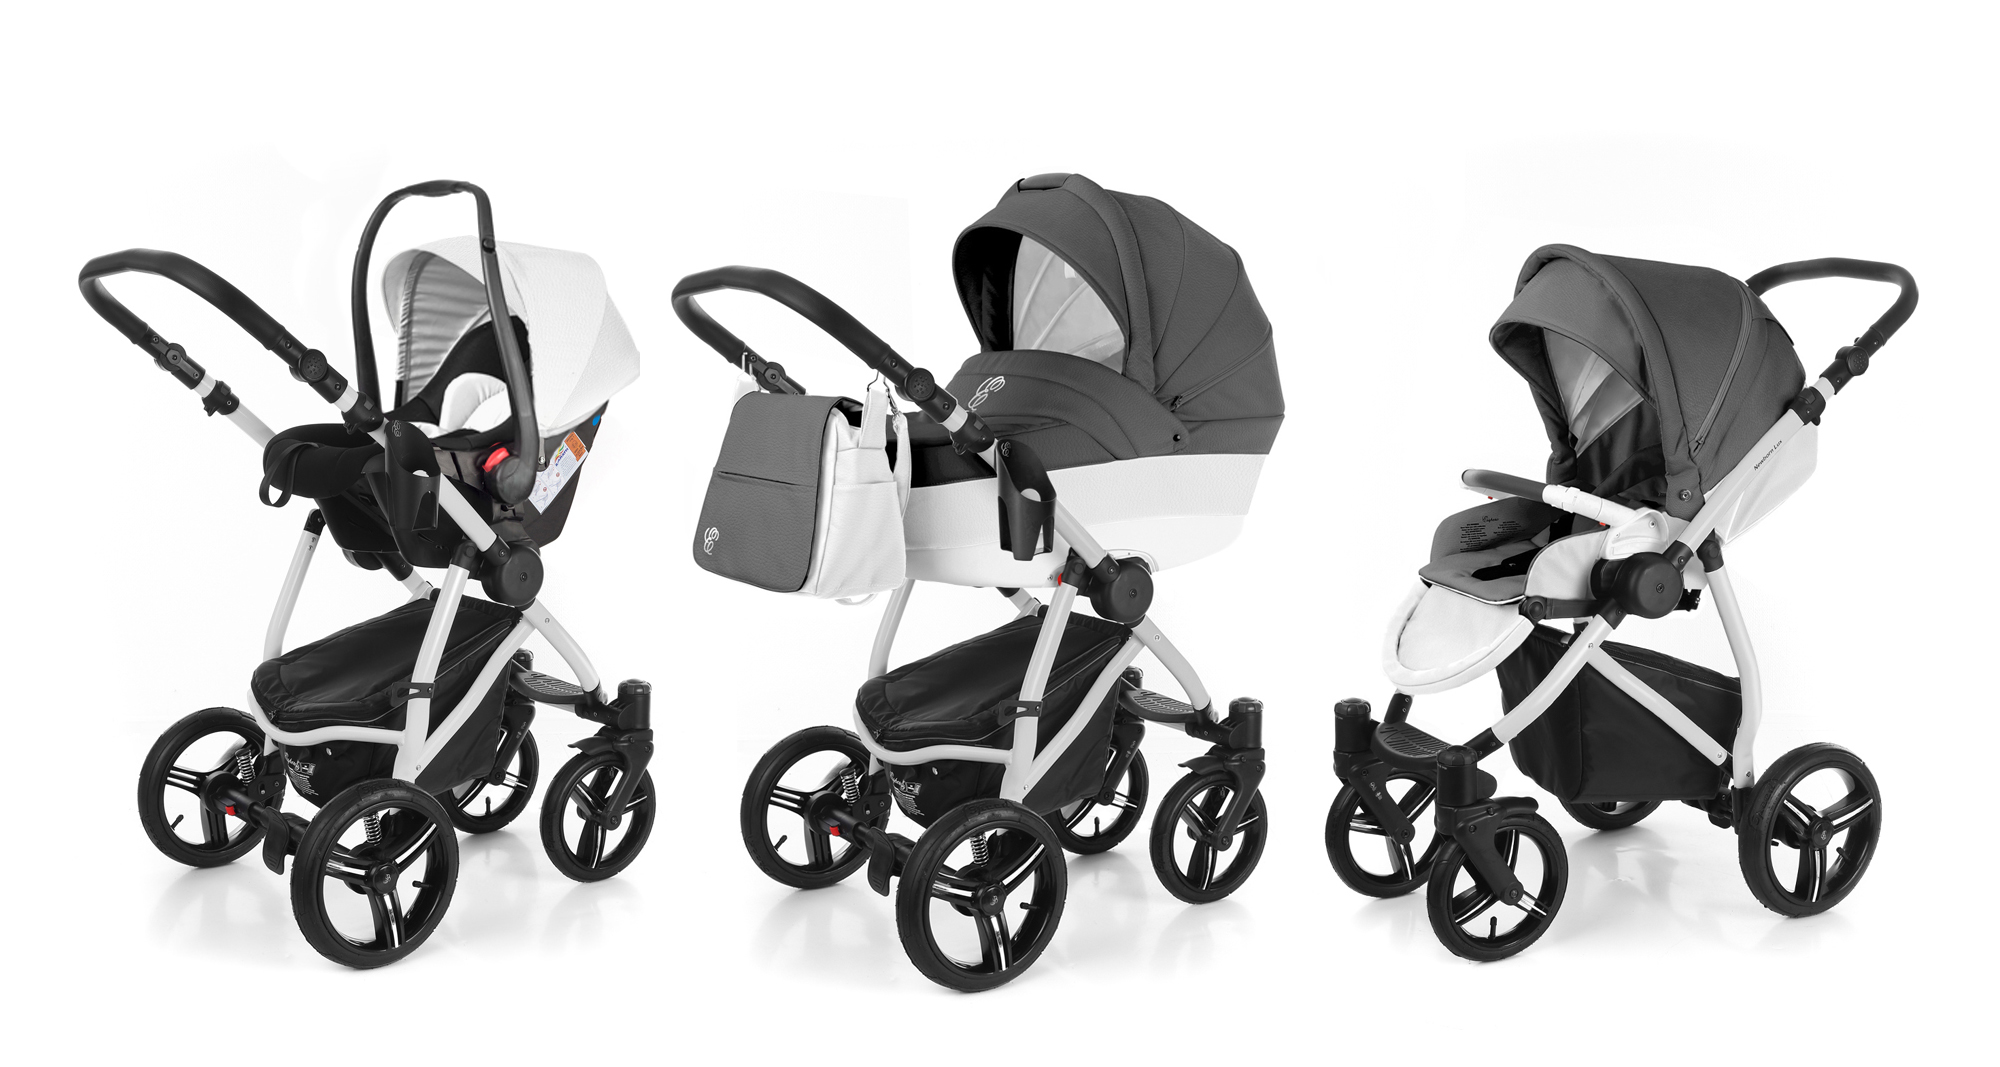 Коляска 3 в 1 Esspero Grand Newborn Lux (шасси Grey). Фото N6